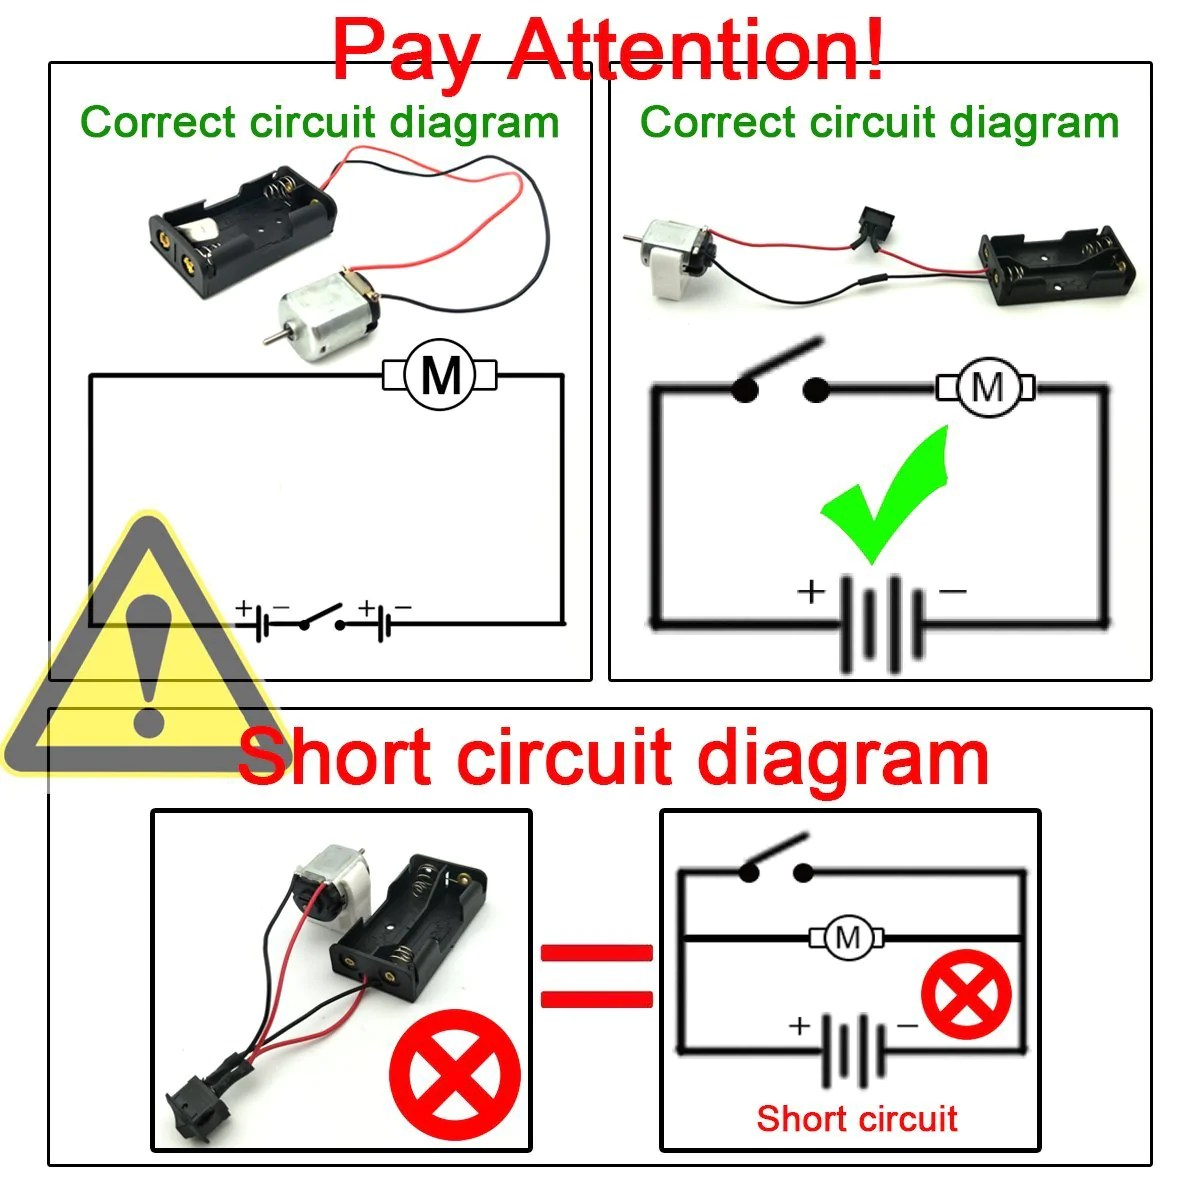 small resolution of  eudax 6 set small dc motor mini electric hobby motors 1 5v 3v 15000rpm with